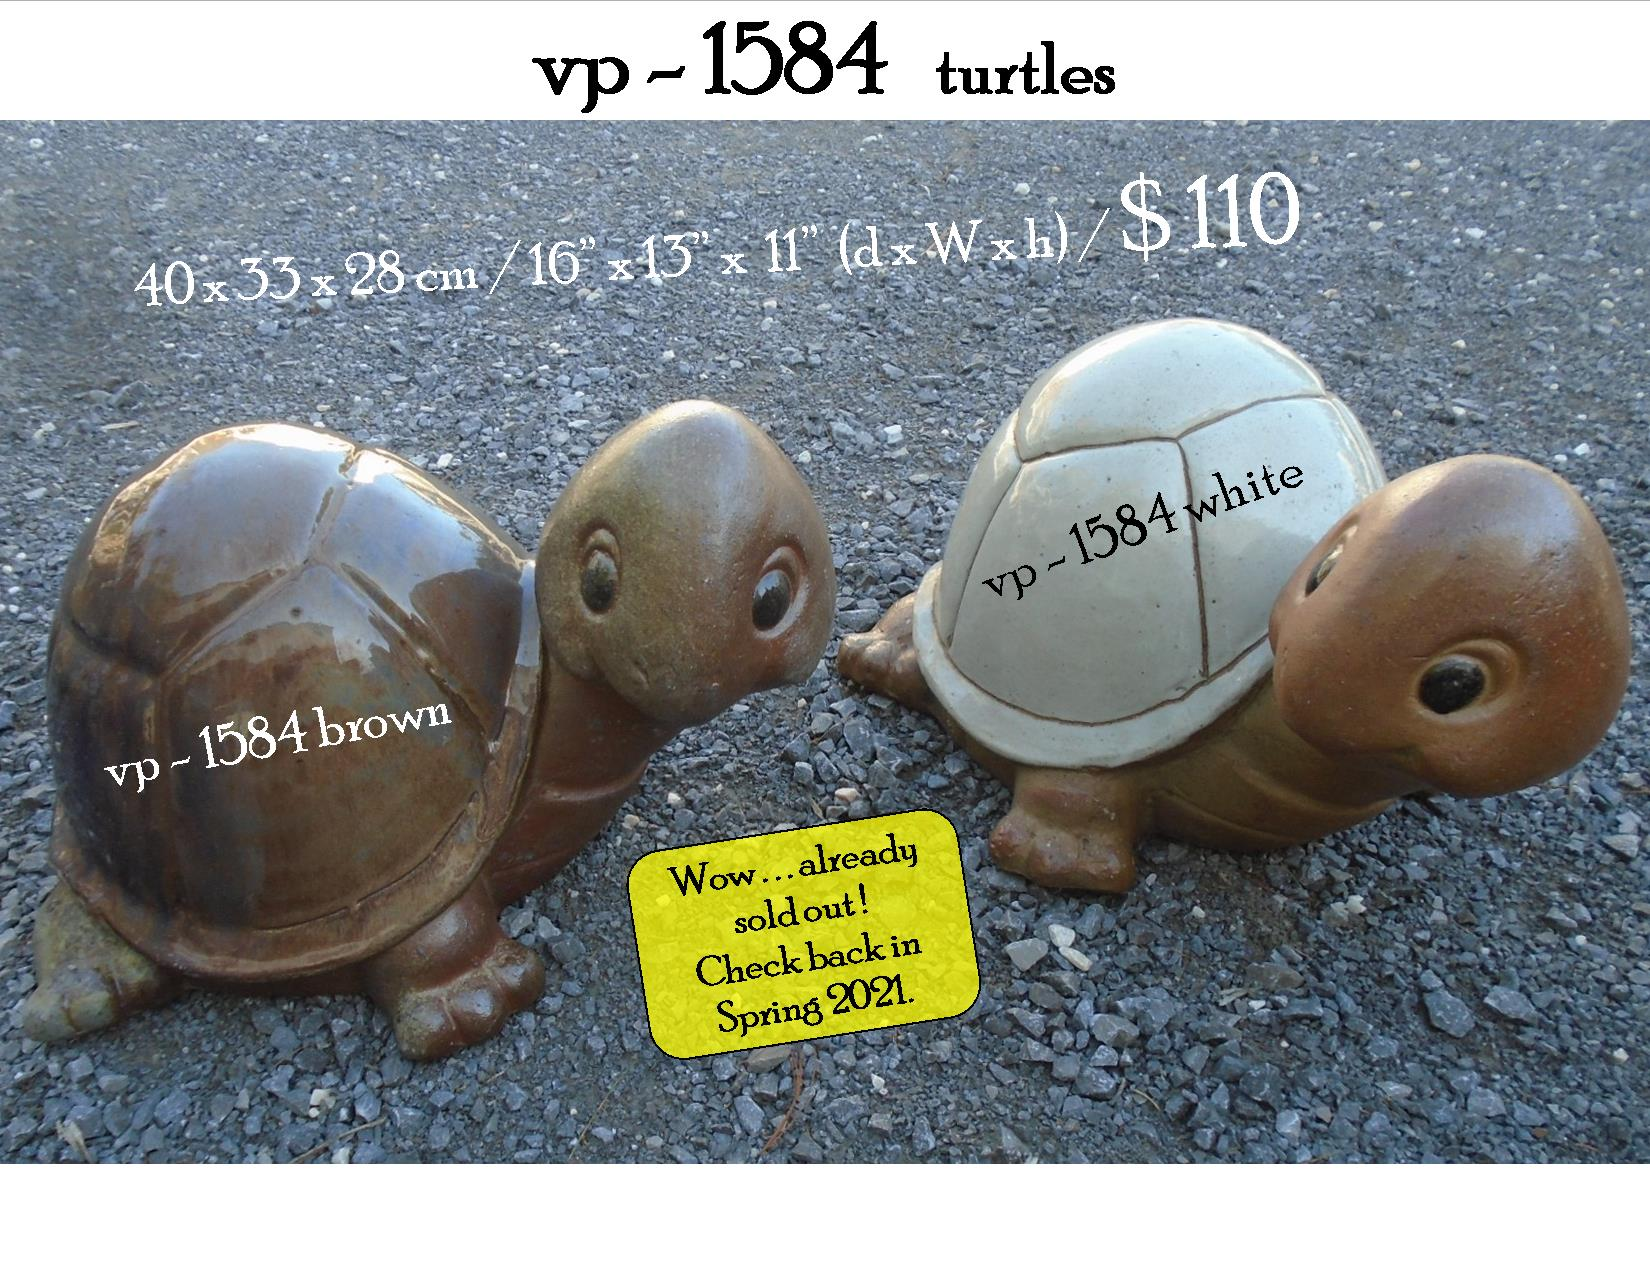 vp - 1584   turtles, sold out